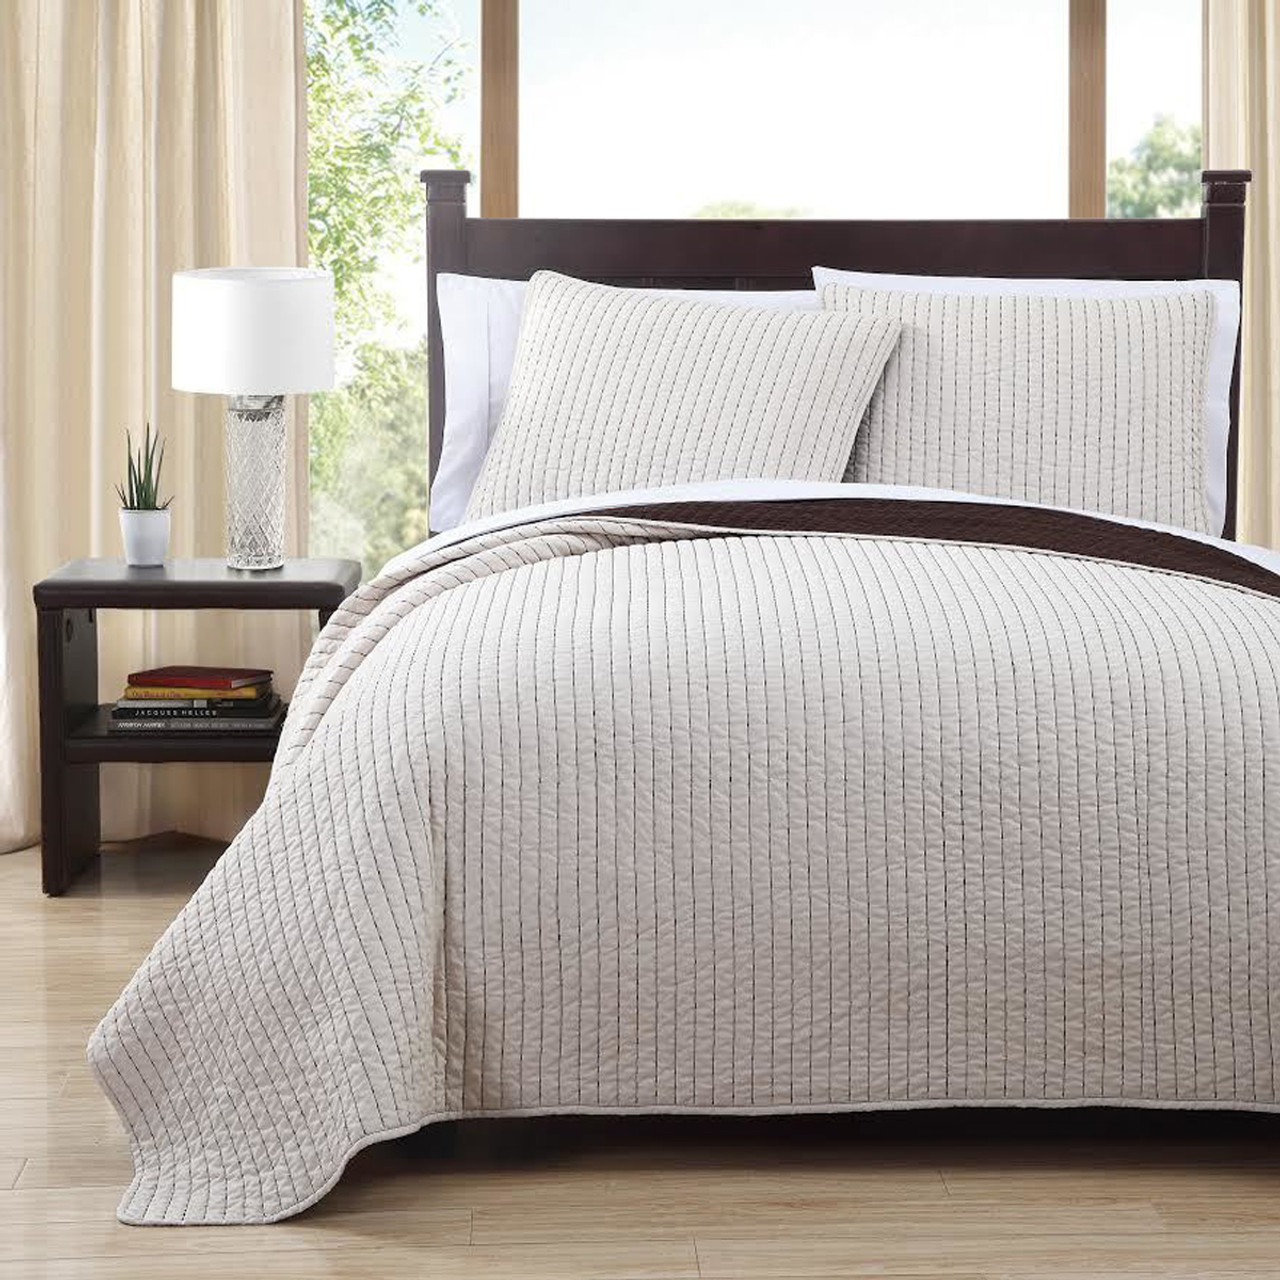 Project Runway Oversized Reversible Quilted Coverlet Sets